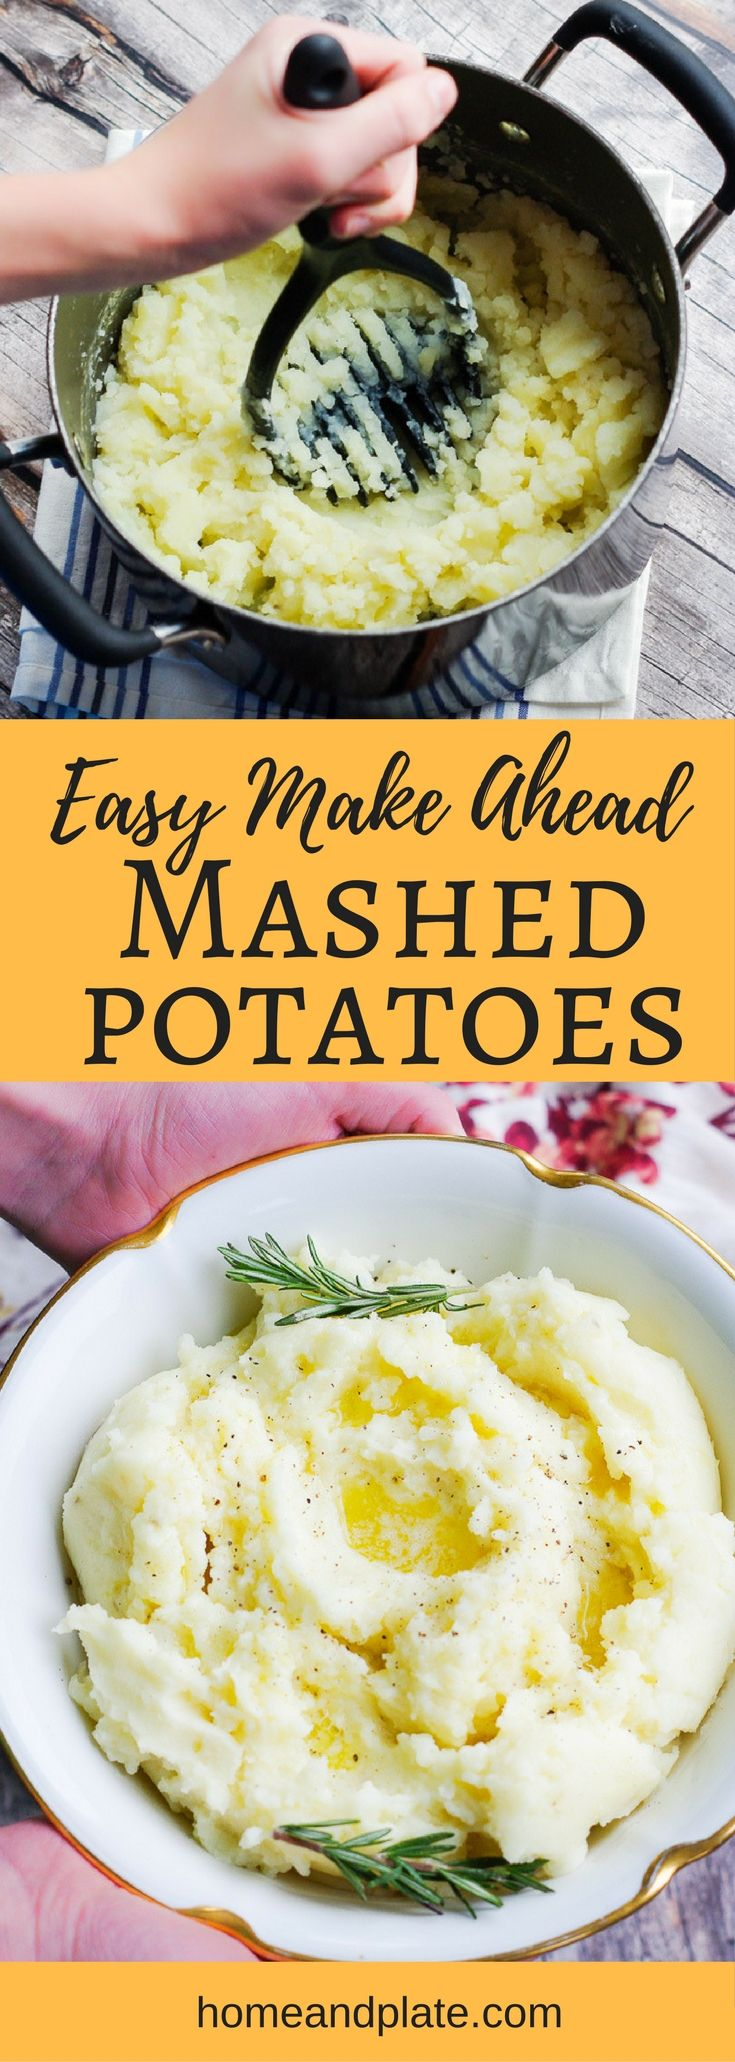 Easy Make-Ahead Mashed Potatoes | www.homeandplate.com | Easy to make ahead of time, these simple mashed potatoes will be the most popular dish on your dinner table. #mashedpotatoes #thanksgiving